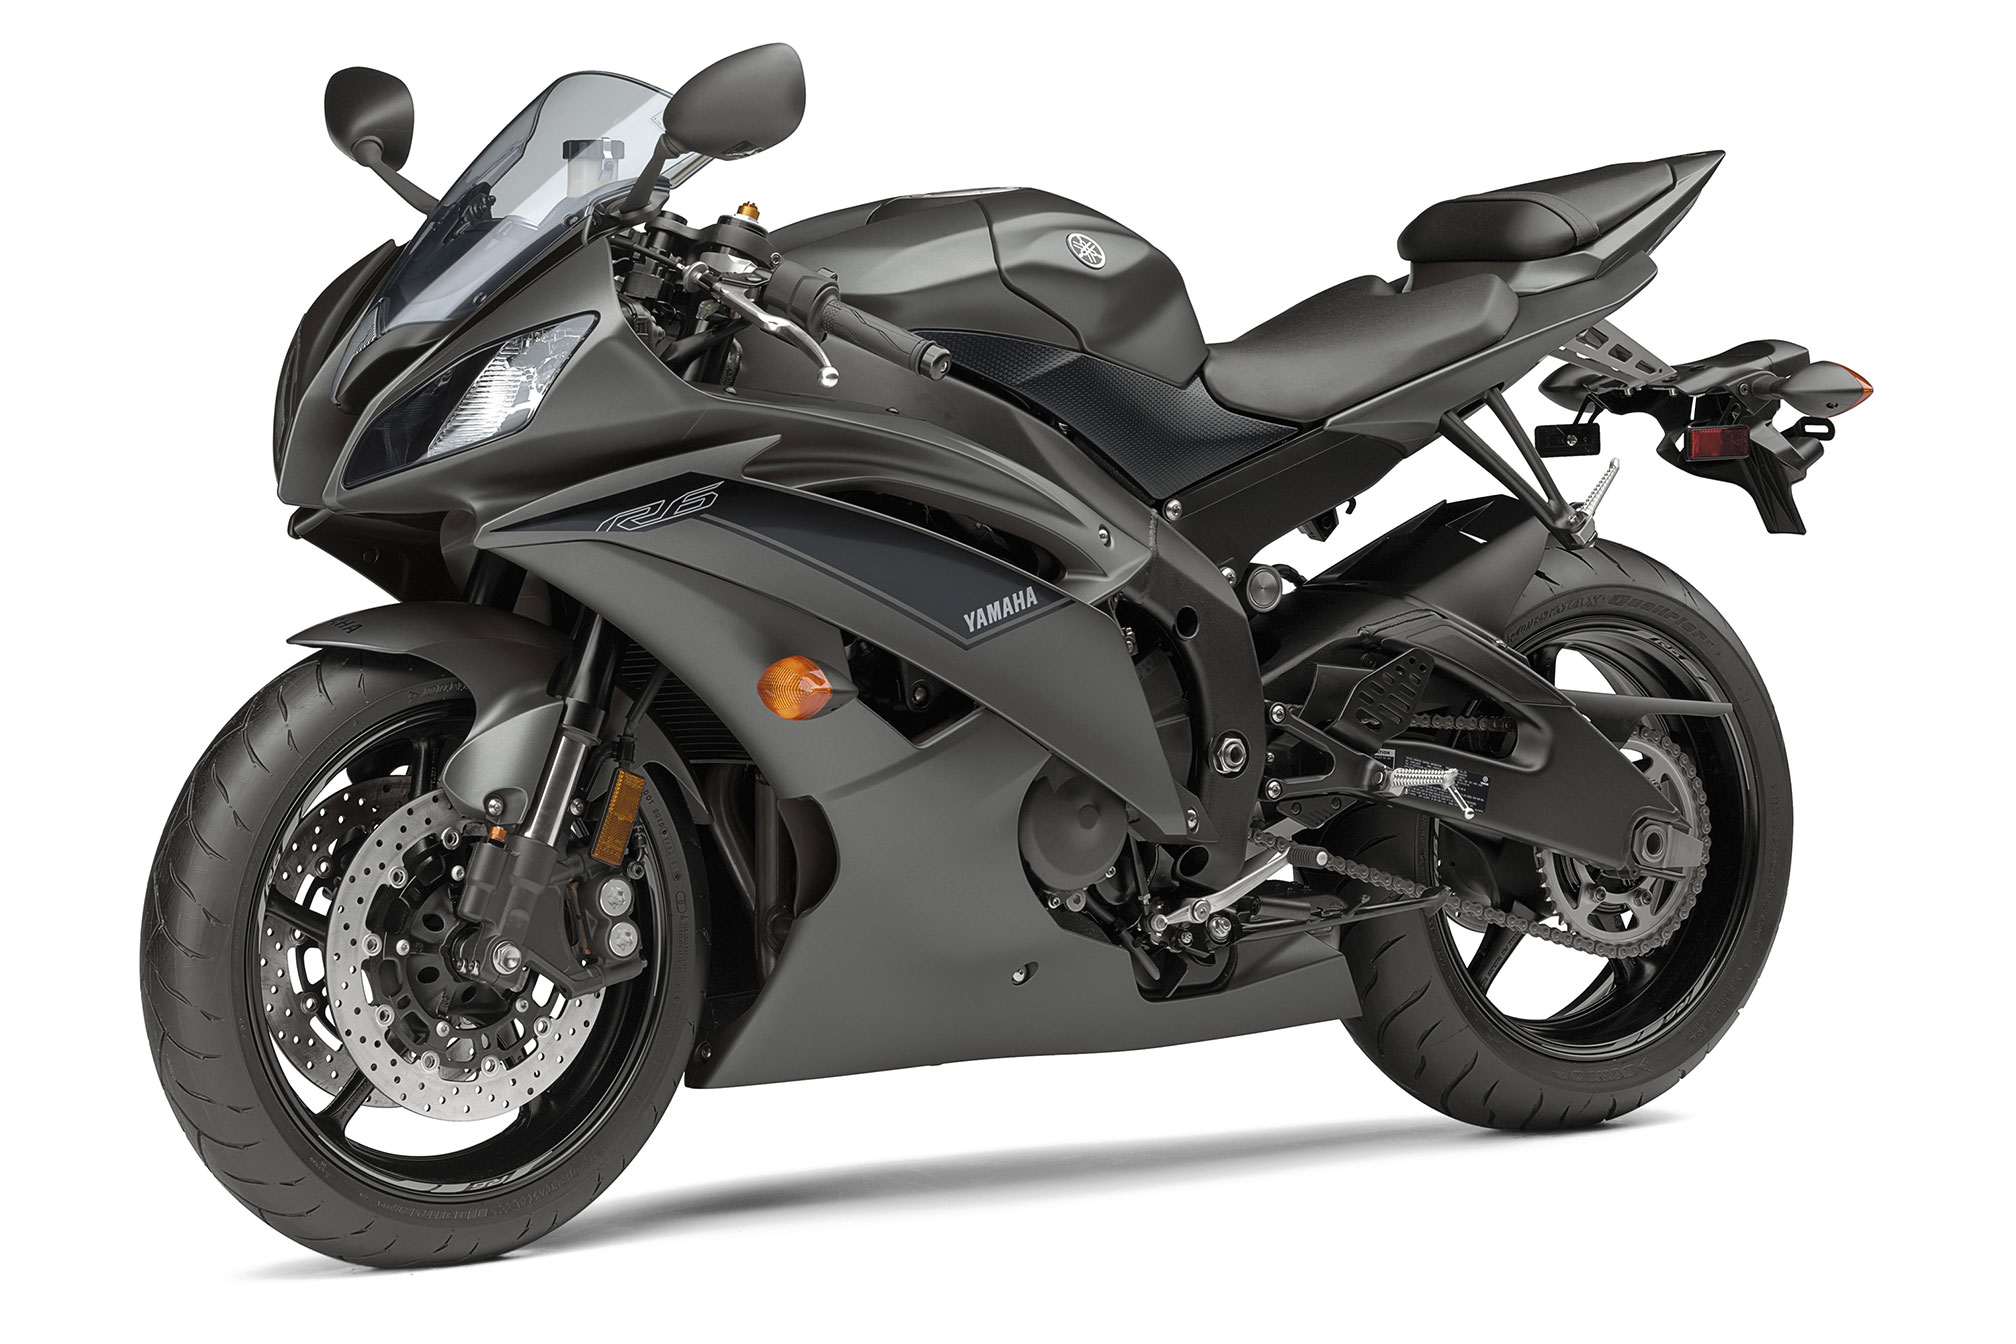 Is the honda cbr600rr getting axed bikesrepublic for Yamaha r6 motorcycle